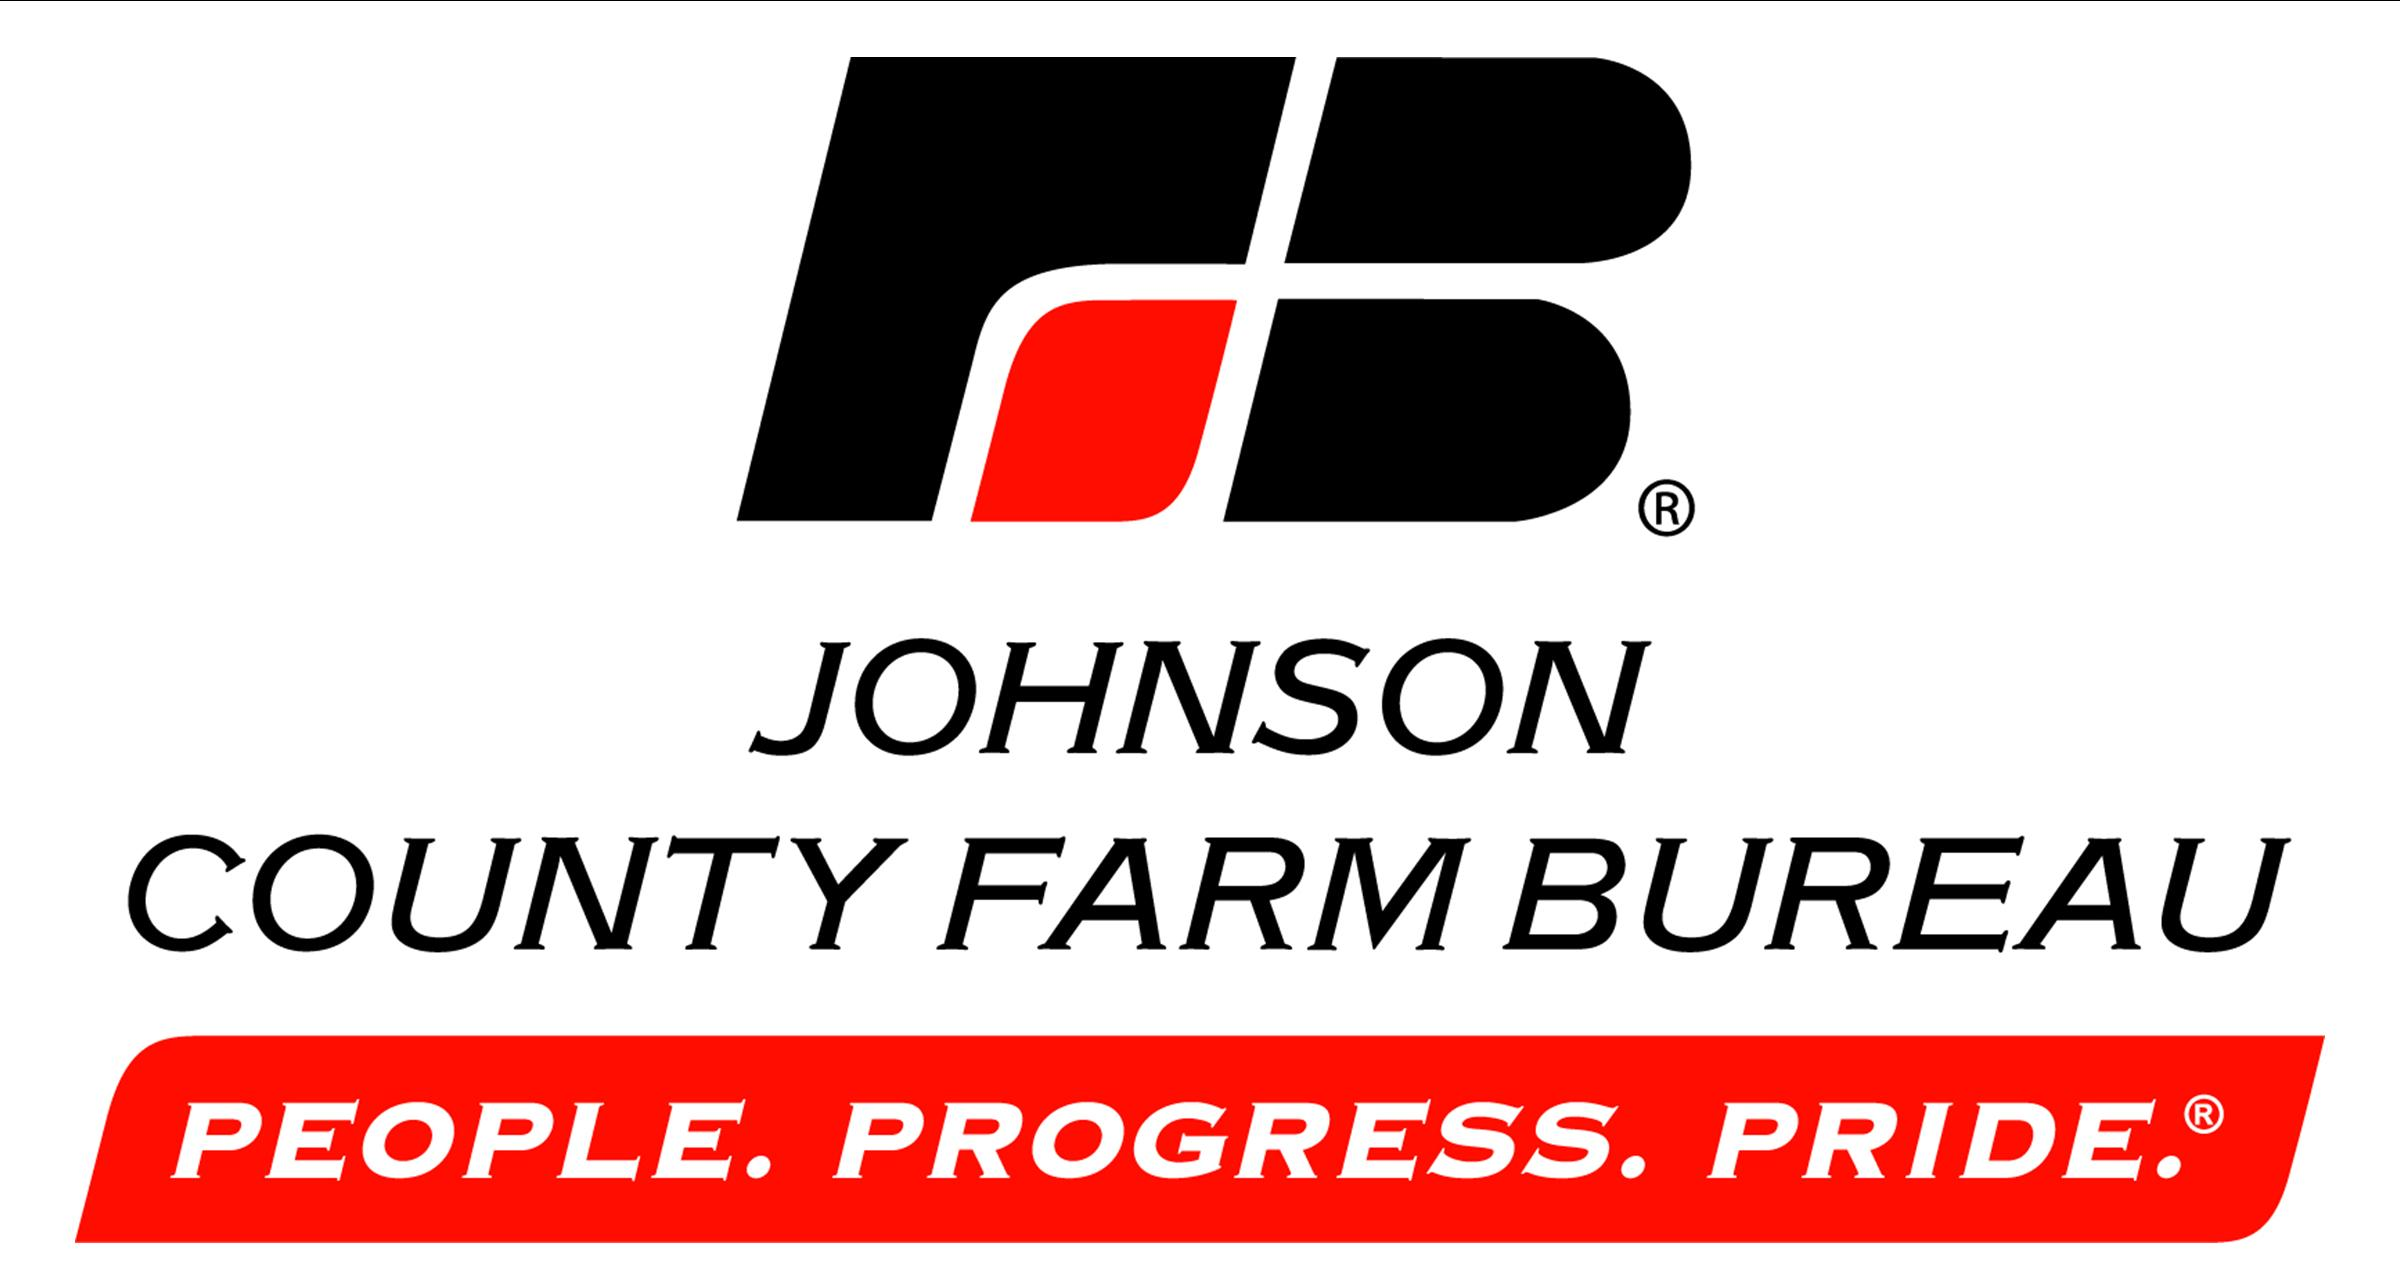 24 Johnson County Farm Bureau TV.jpg